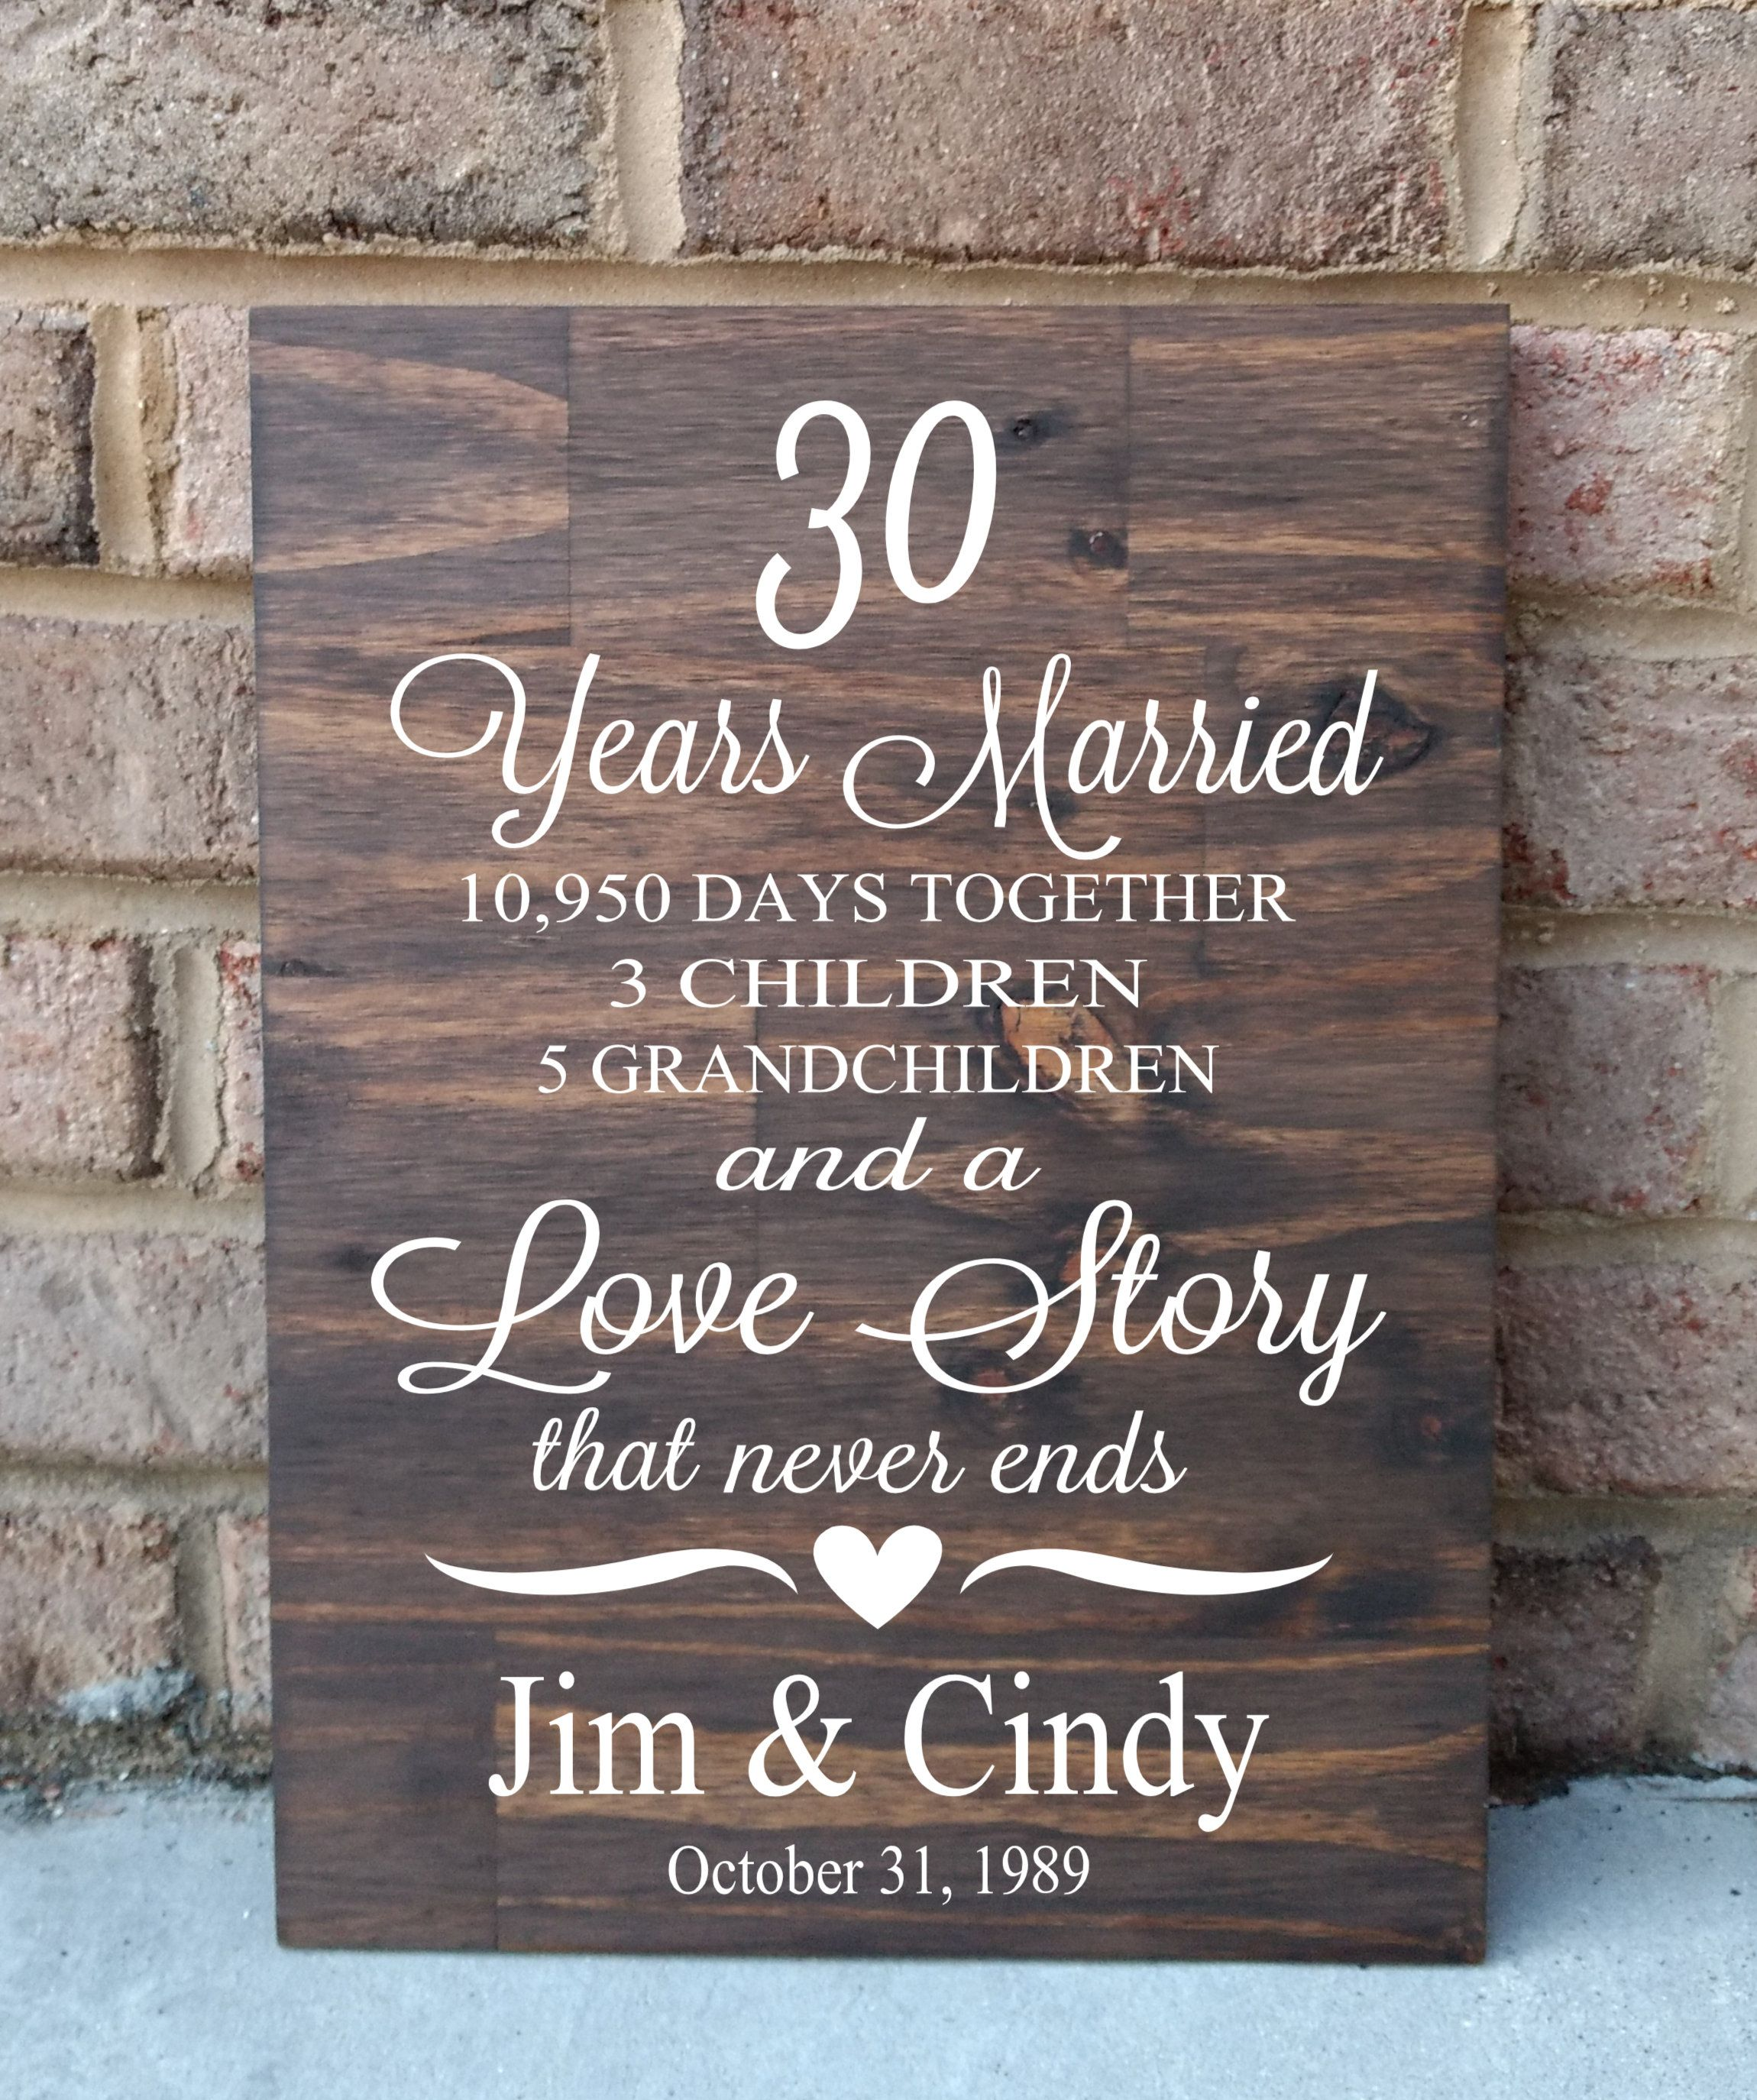 30 Years of Marriage Hand Painted Wood Sign, 30th